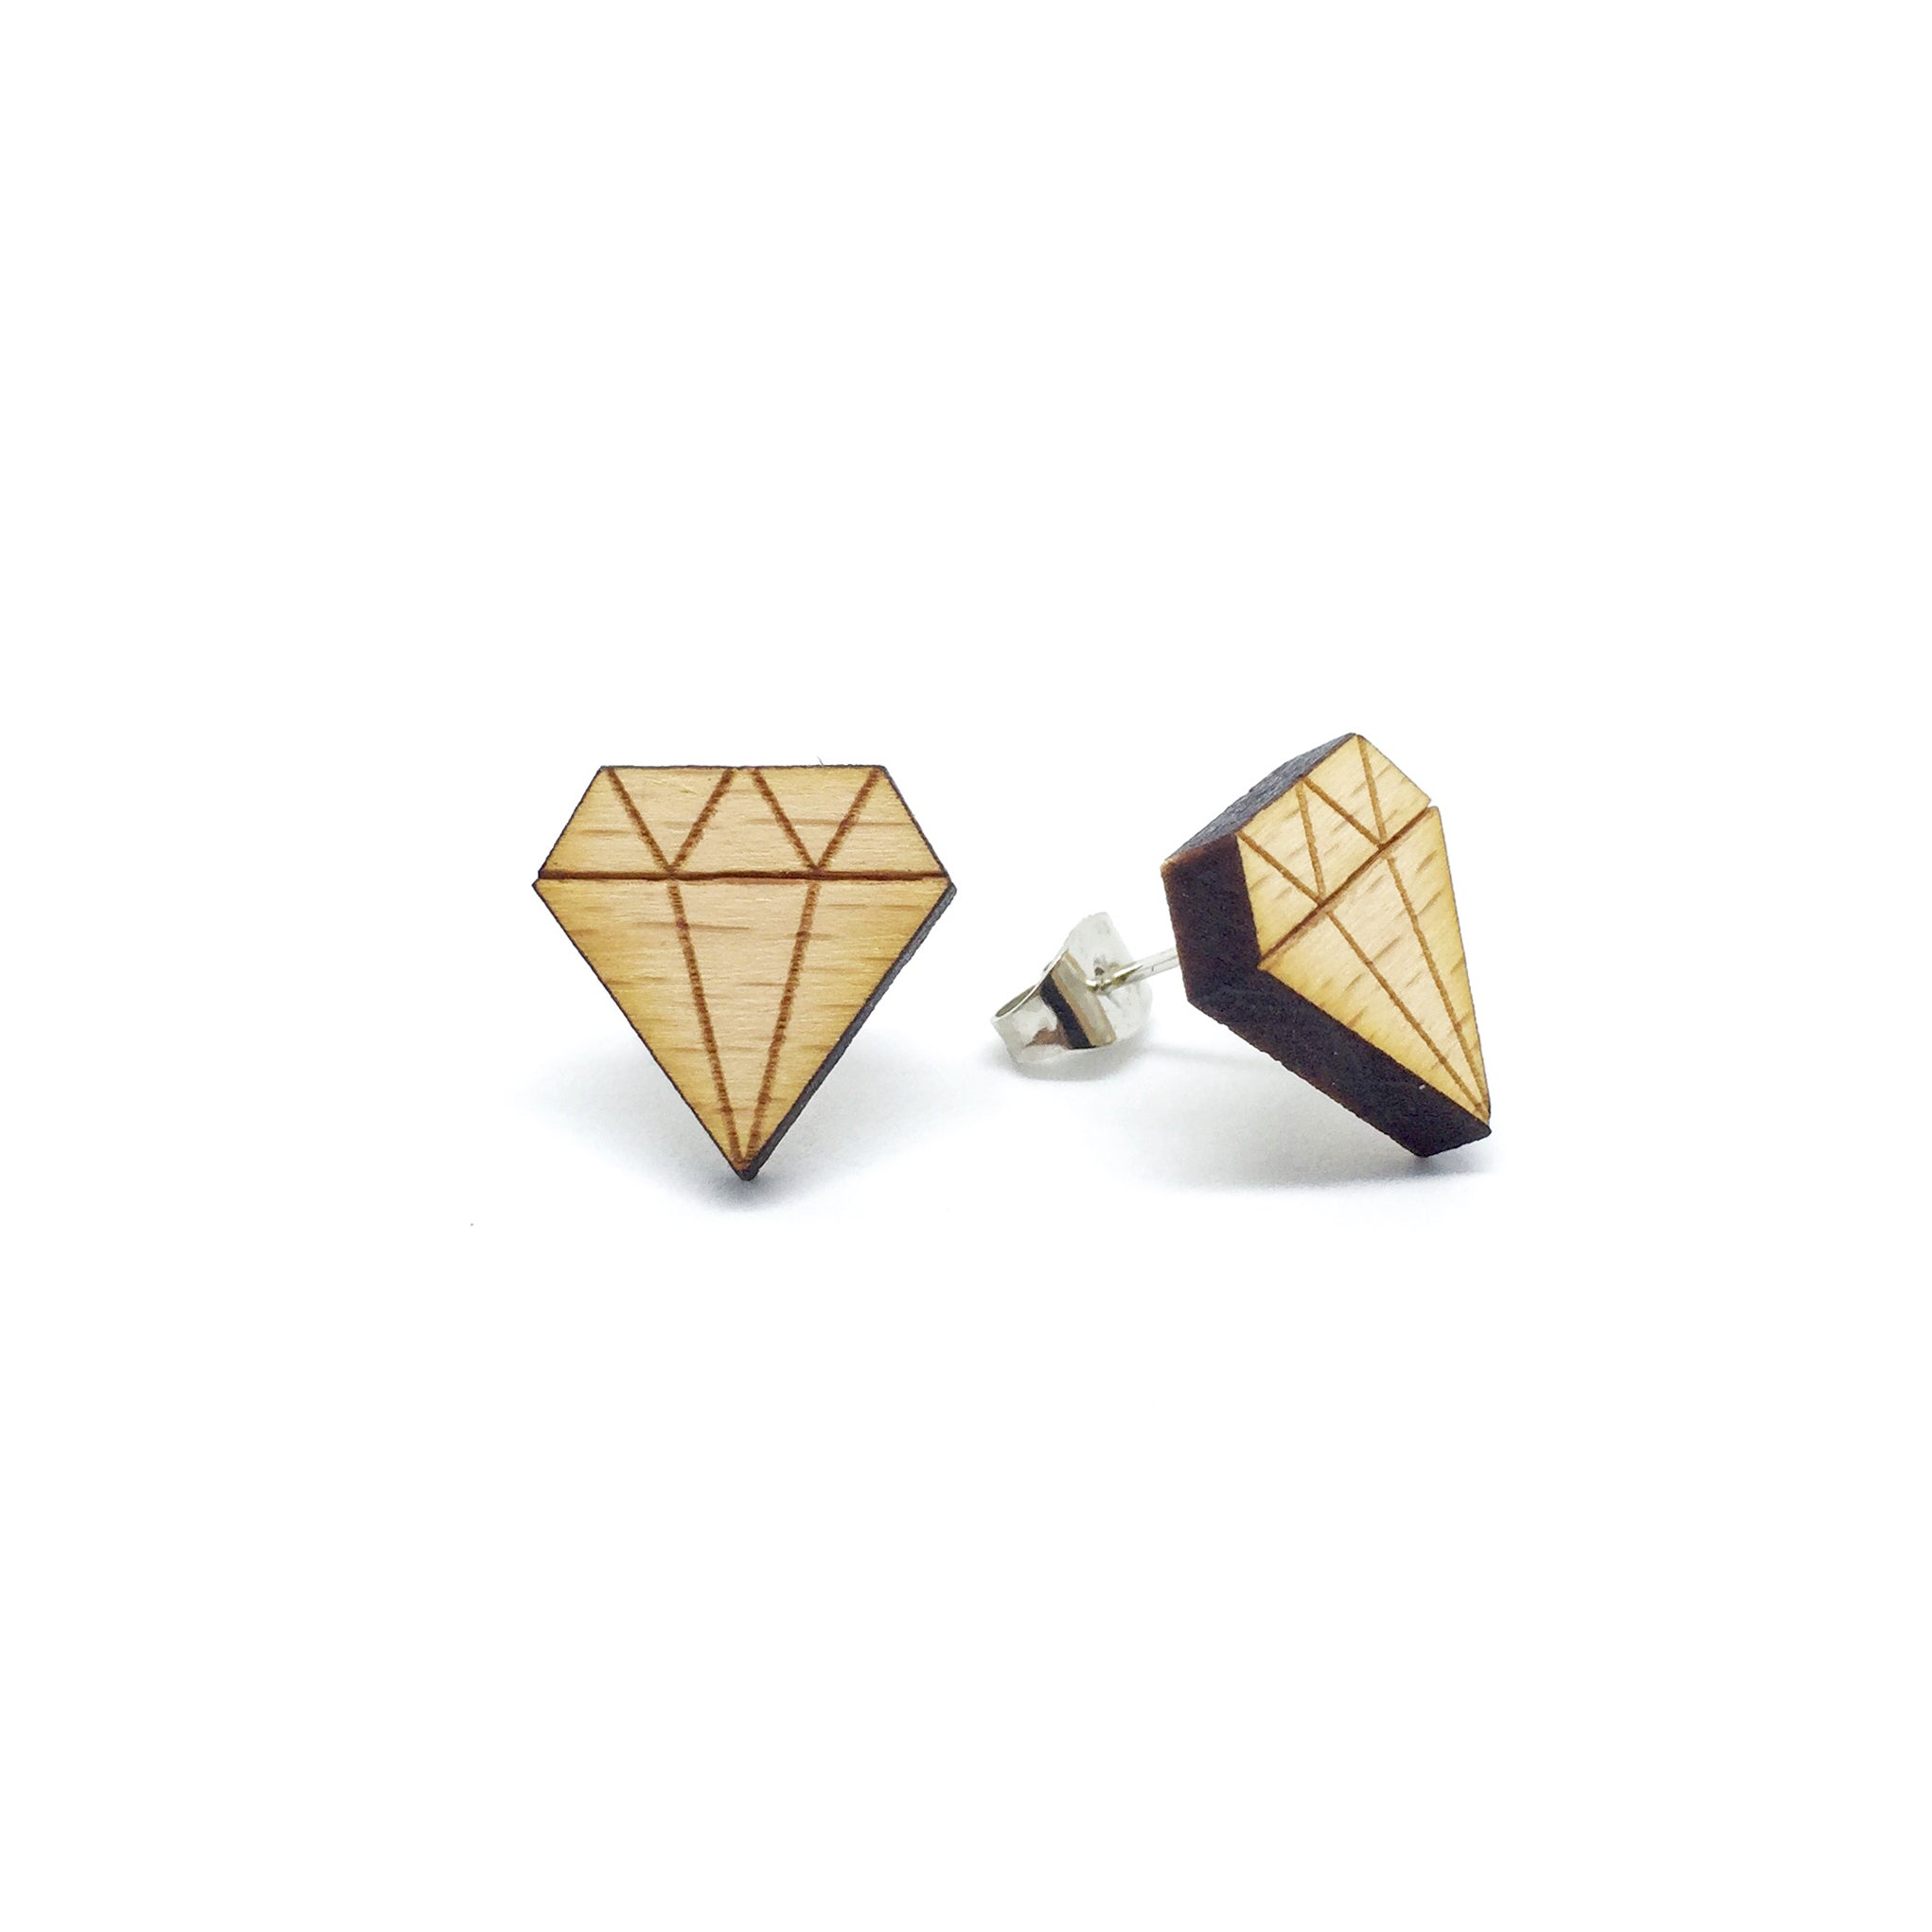 Diamond Laser Cut Wood Earrings